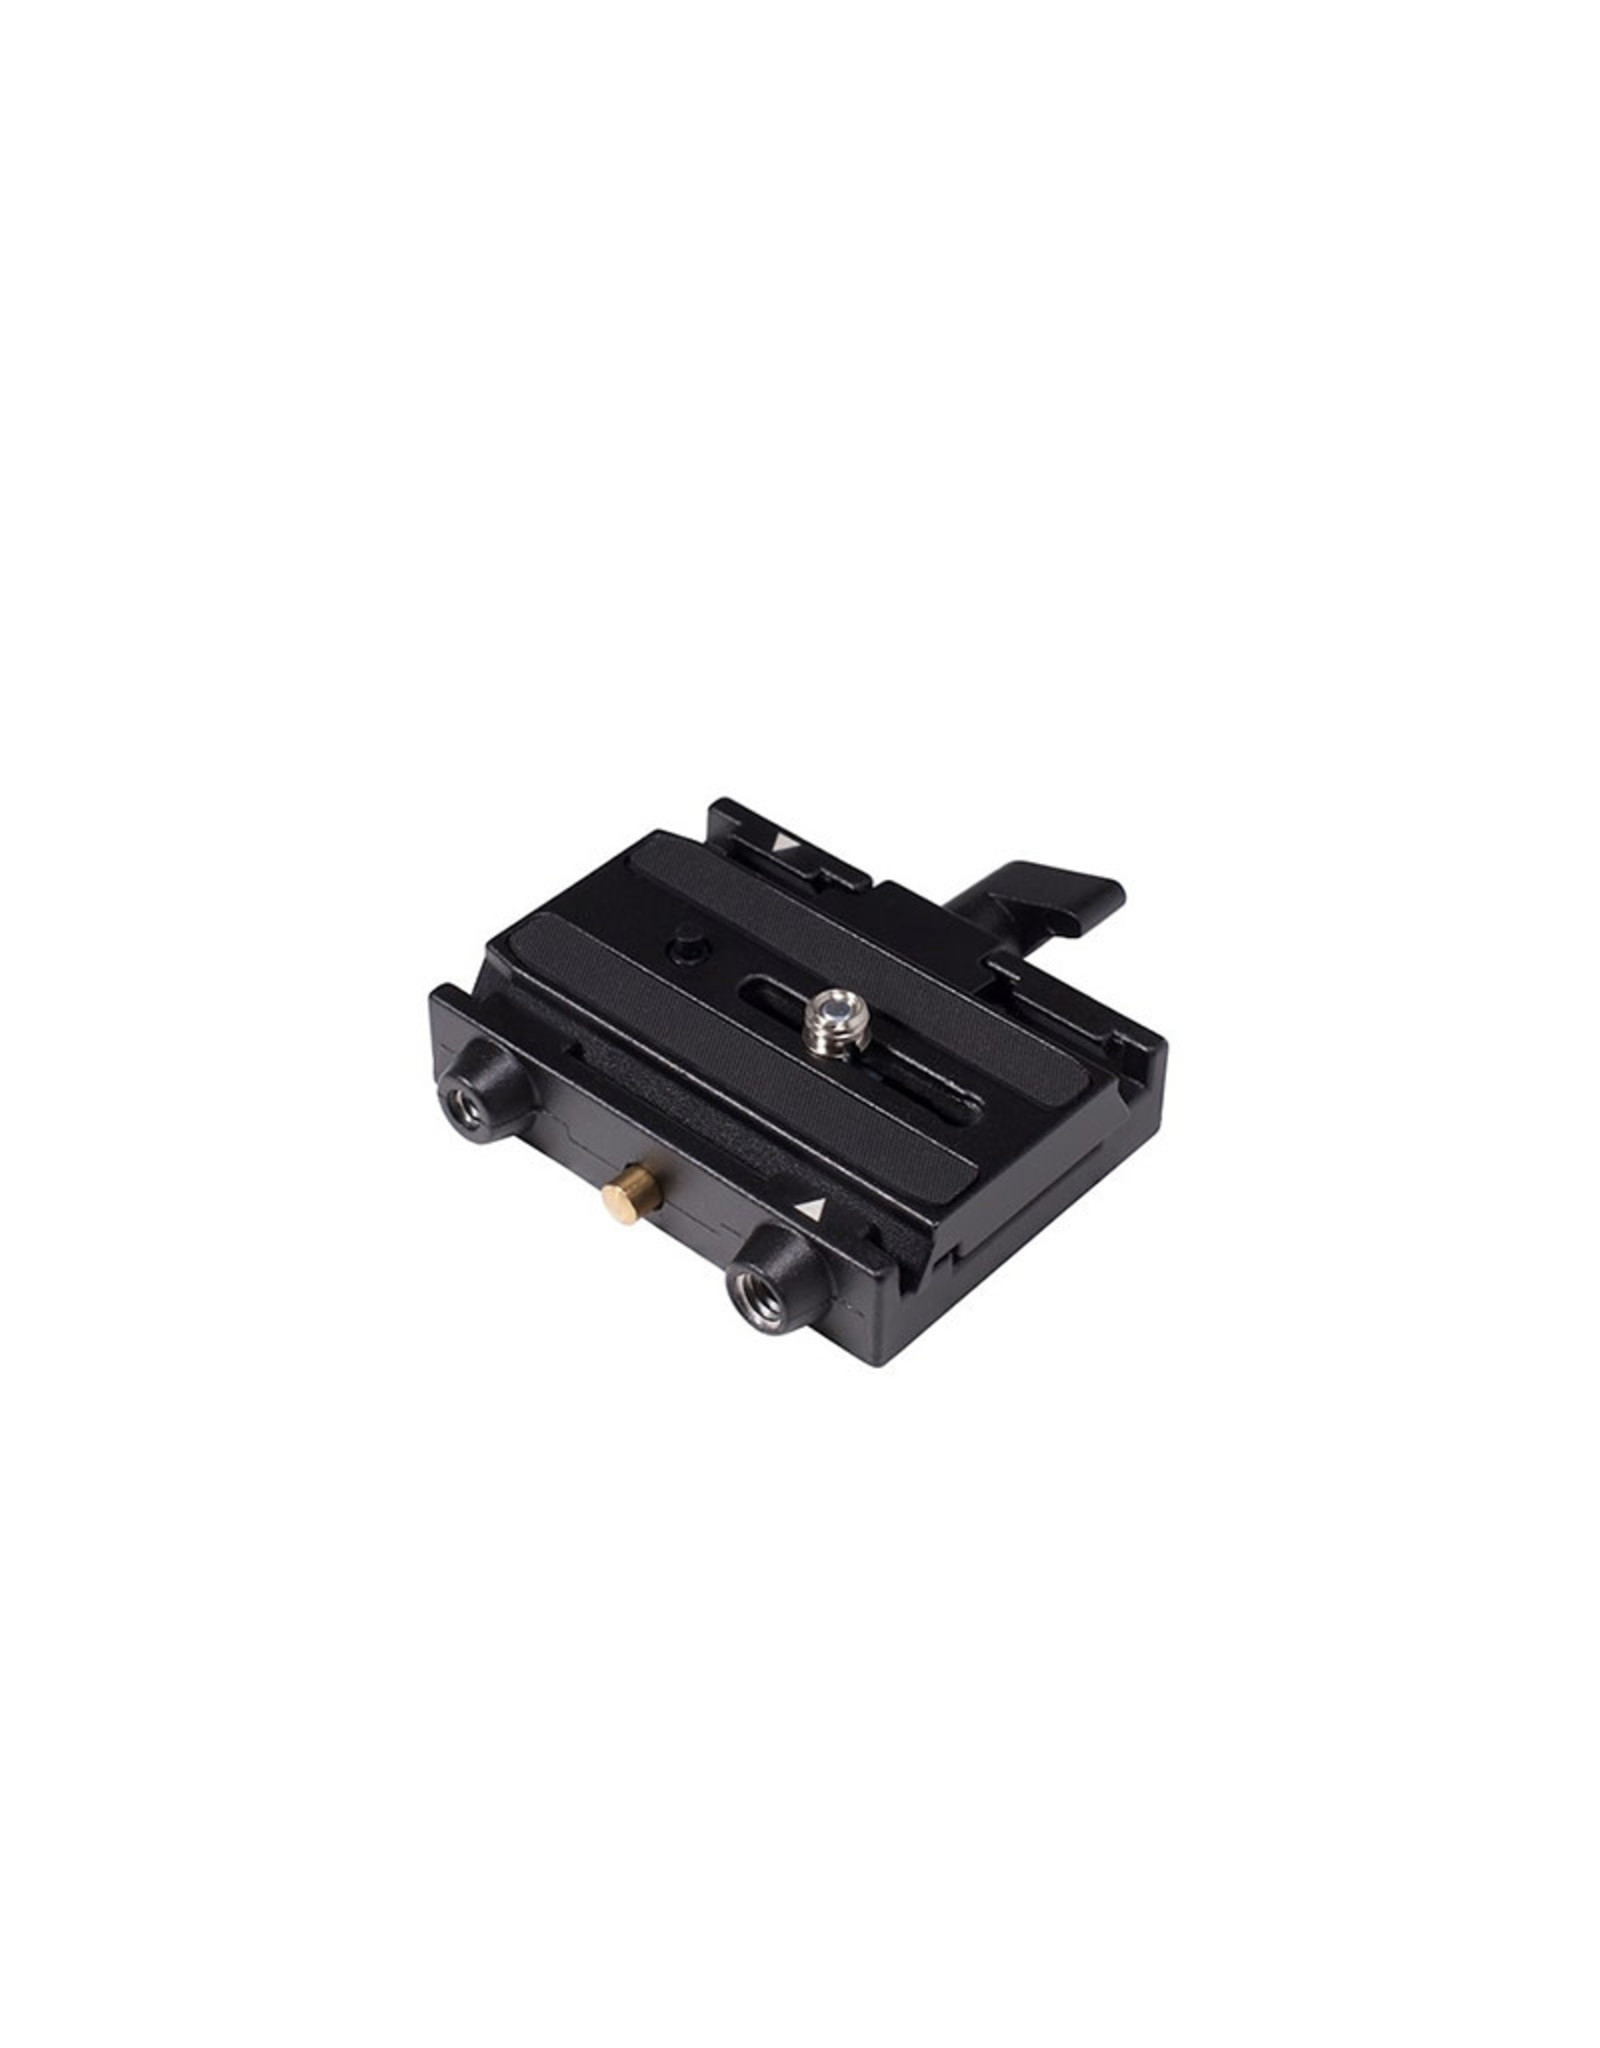 Manfrotto Manfrotto 577 SLIDING PLATE ADAPTER w/ 501PL PLATE